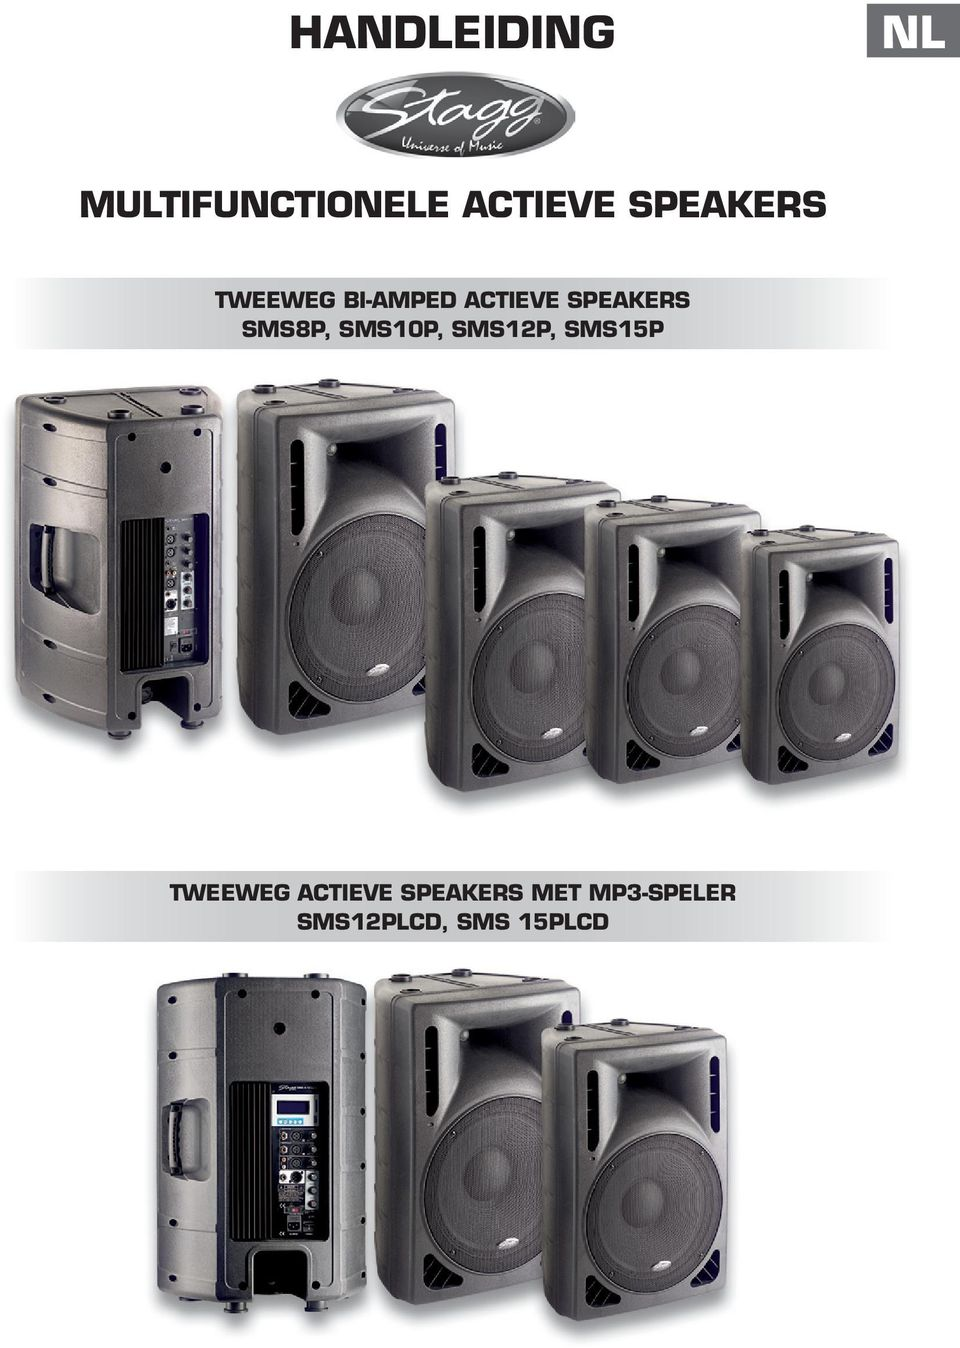 SPEAKERS SMSP, SMS0P, SMSP, SMSP TWEEWEG